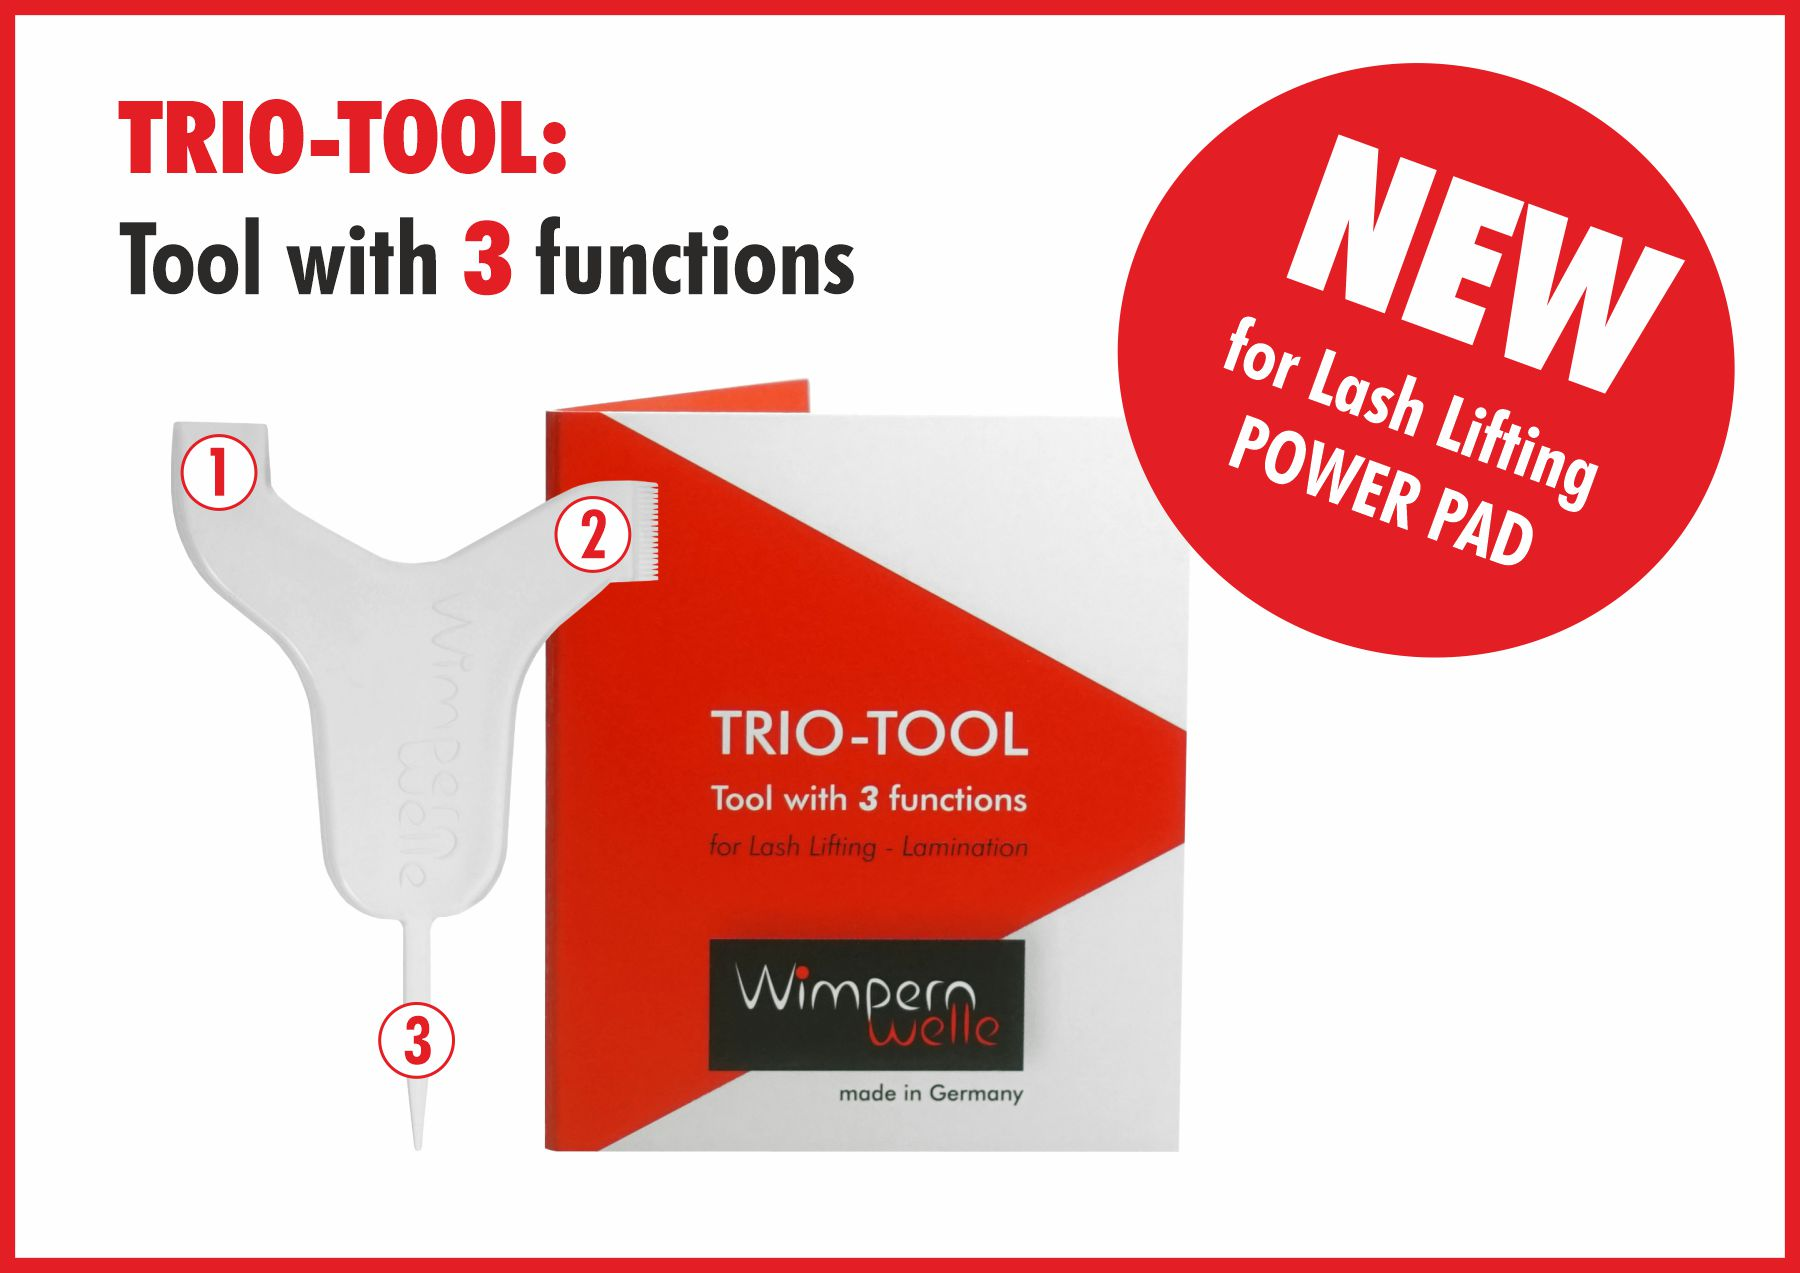 NEW: TRIO-TOOL for Lash Lifting POWER PAD